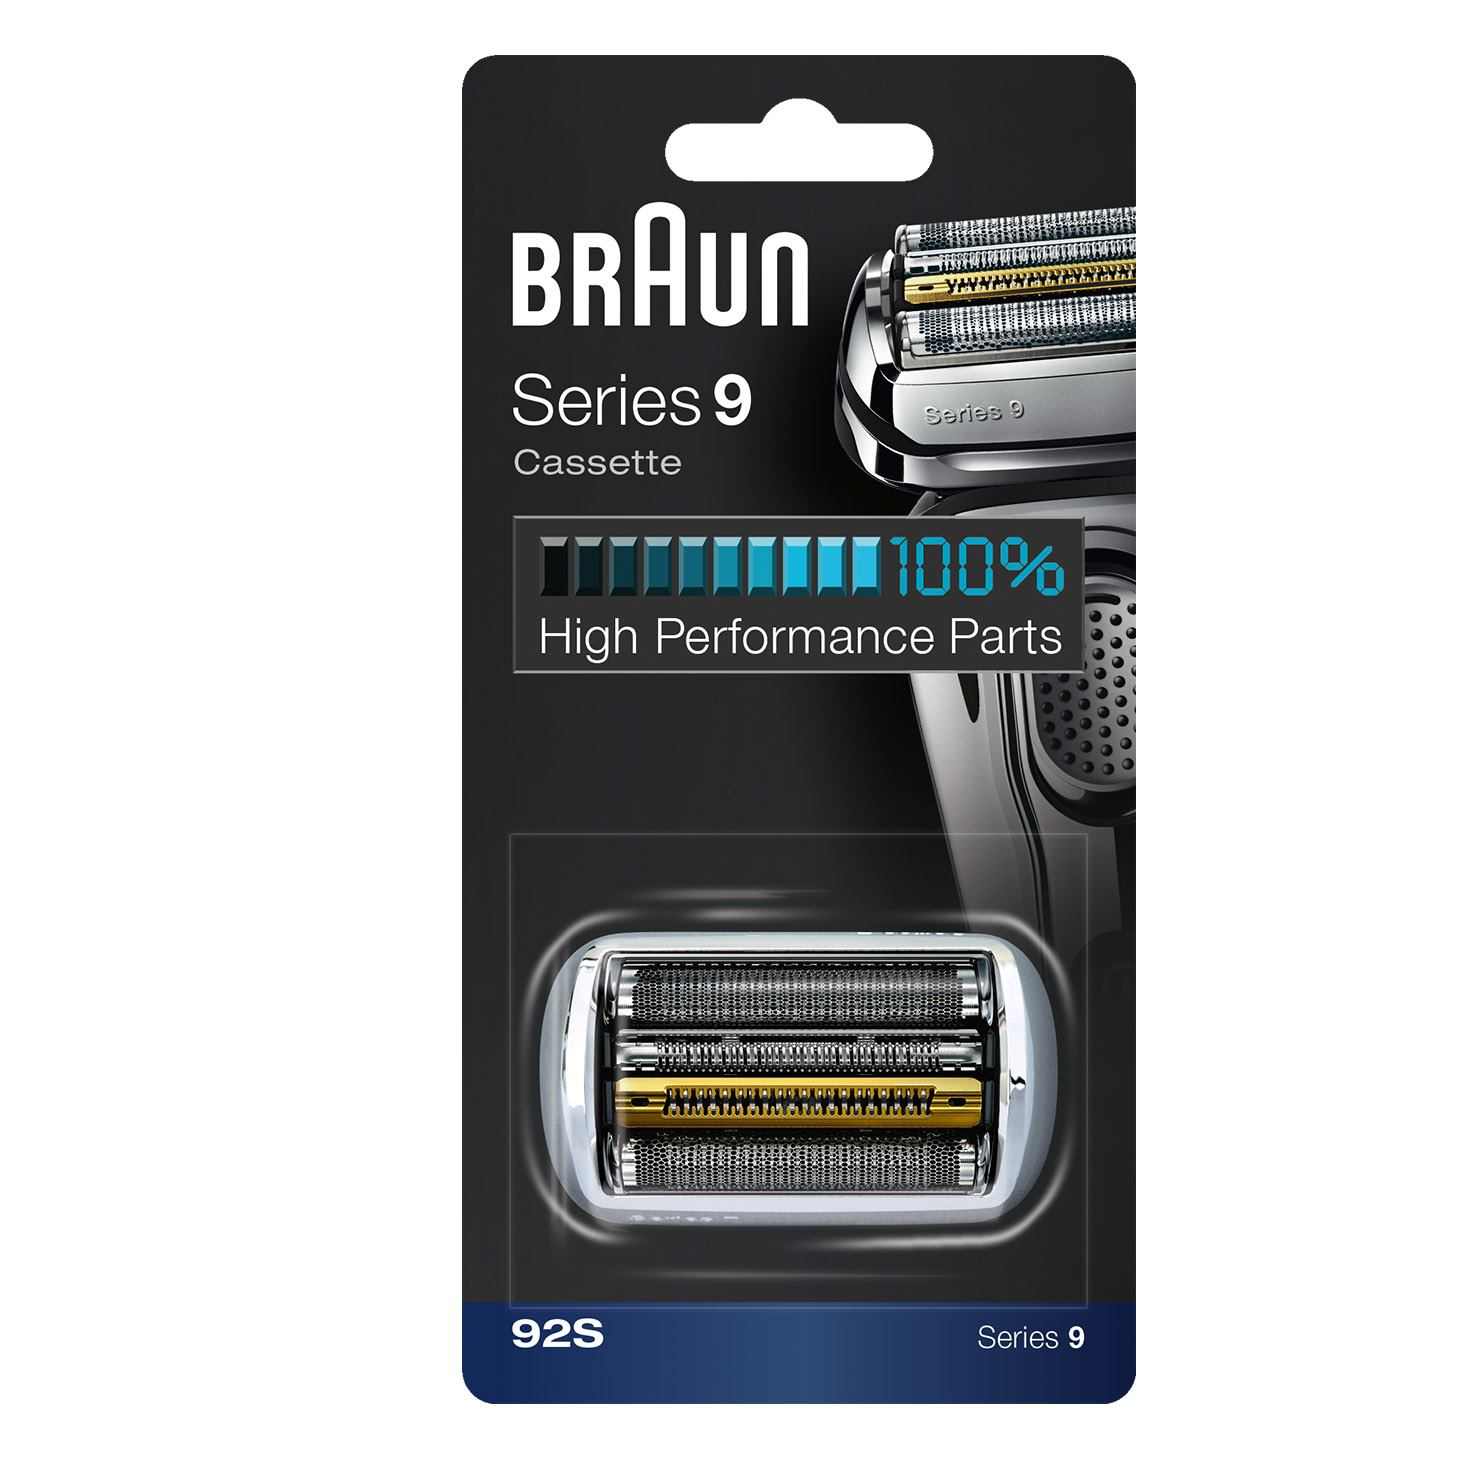 Braun Series 9 Combi 90S Cassette Replacement pack